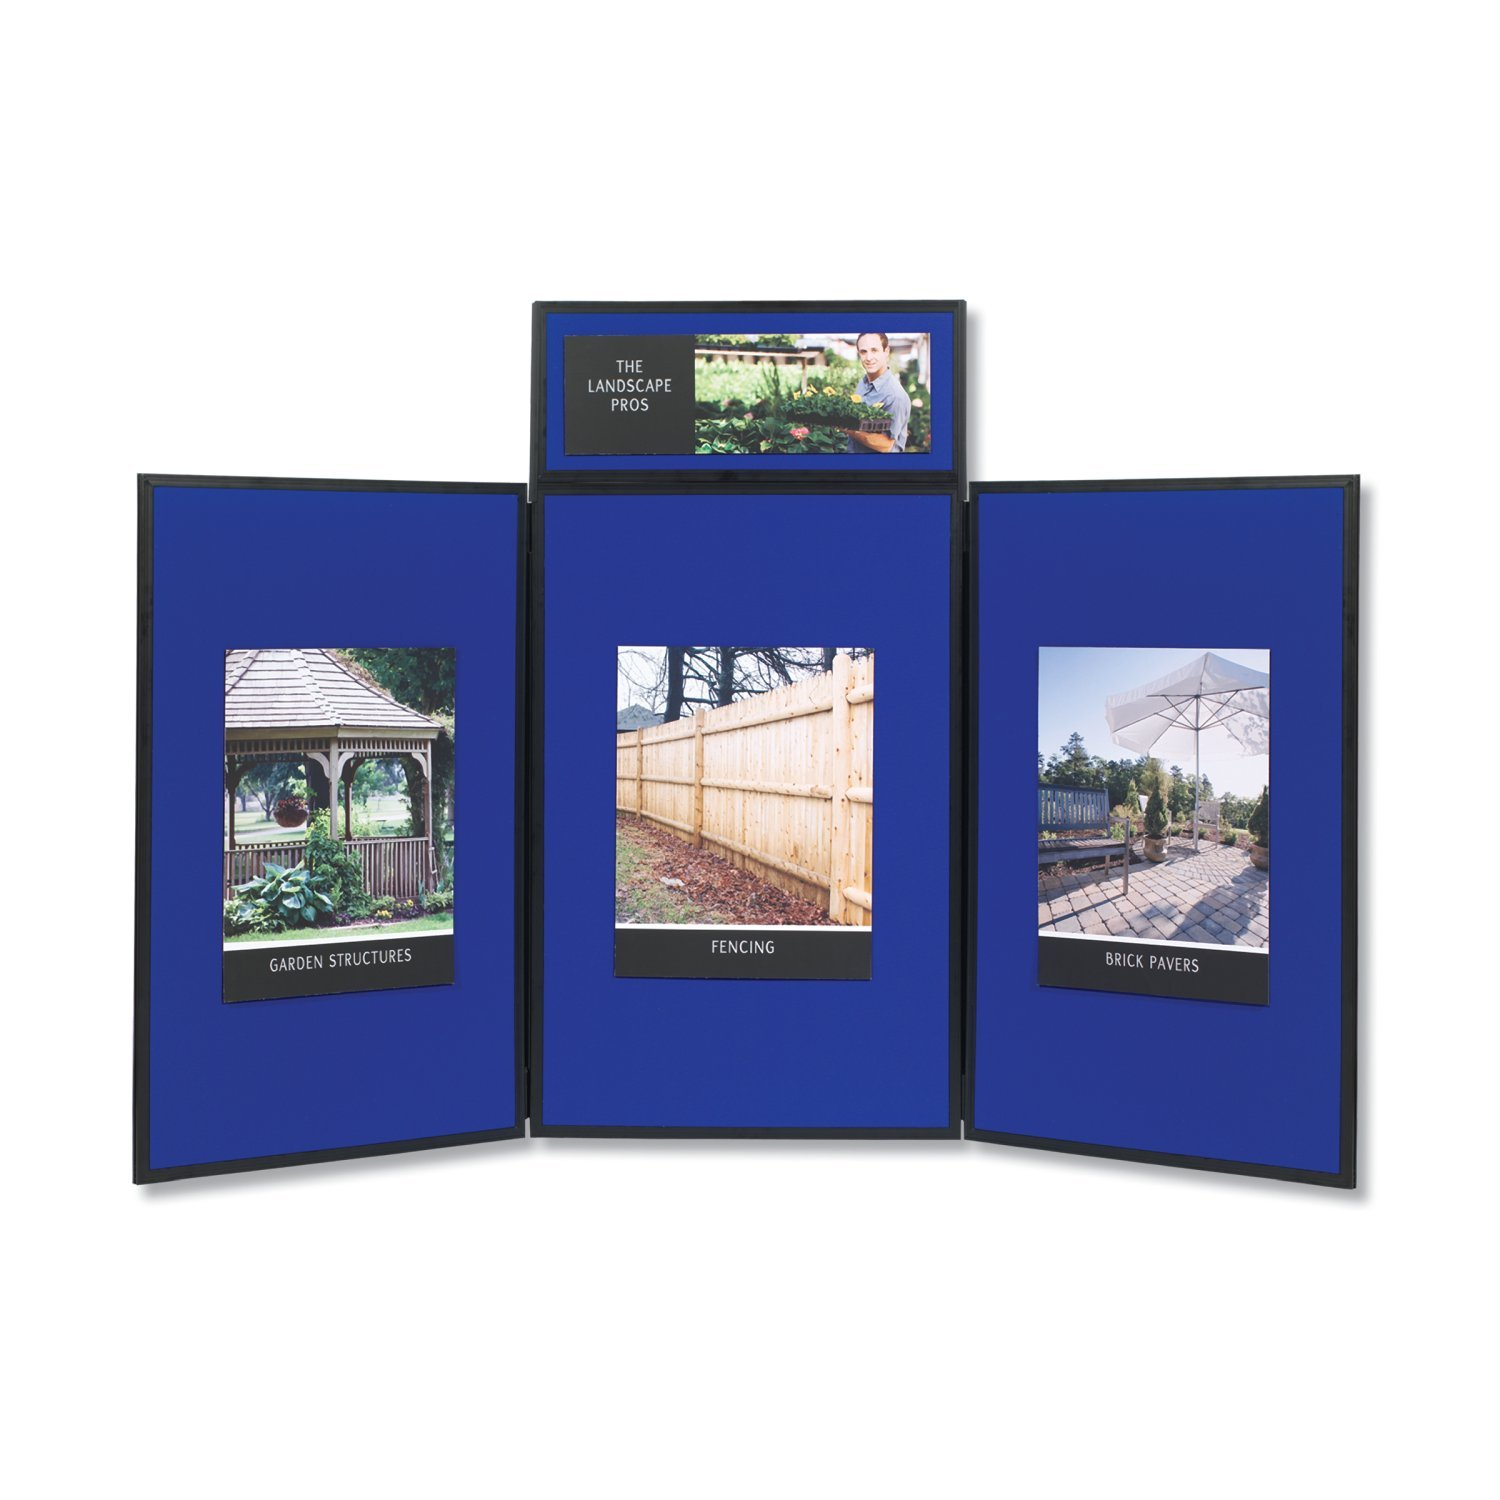 Amazon.com : Quartet Show It! 3 Panel Display System, 6 X 3 Feet,  Double Sided, Blue/Gray (SB93513Q) : Ordinary Display Boards : Office  Products Part 41